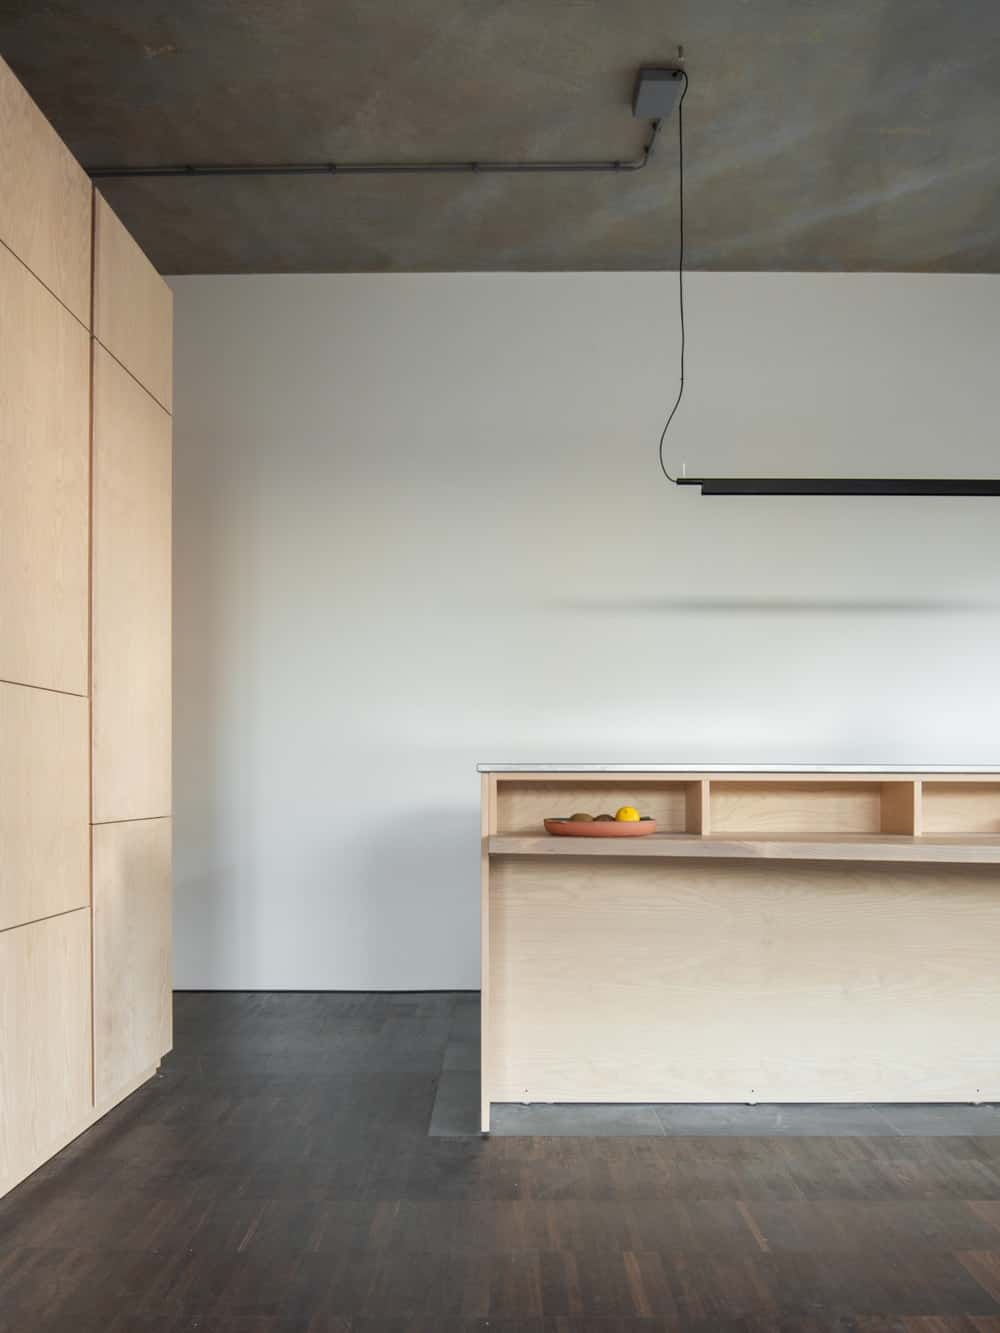 The kitchen island is topped with a modern and sleek black lighting that hangs from the concrete gray ceiling.